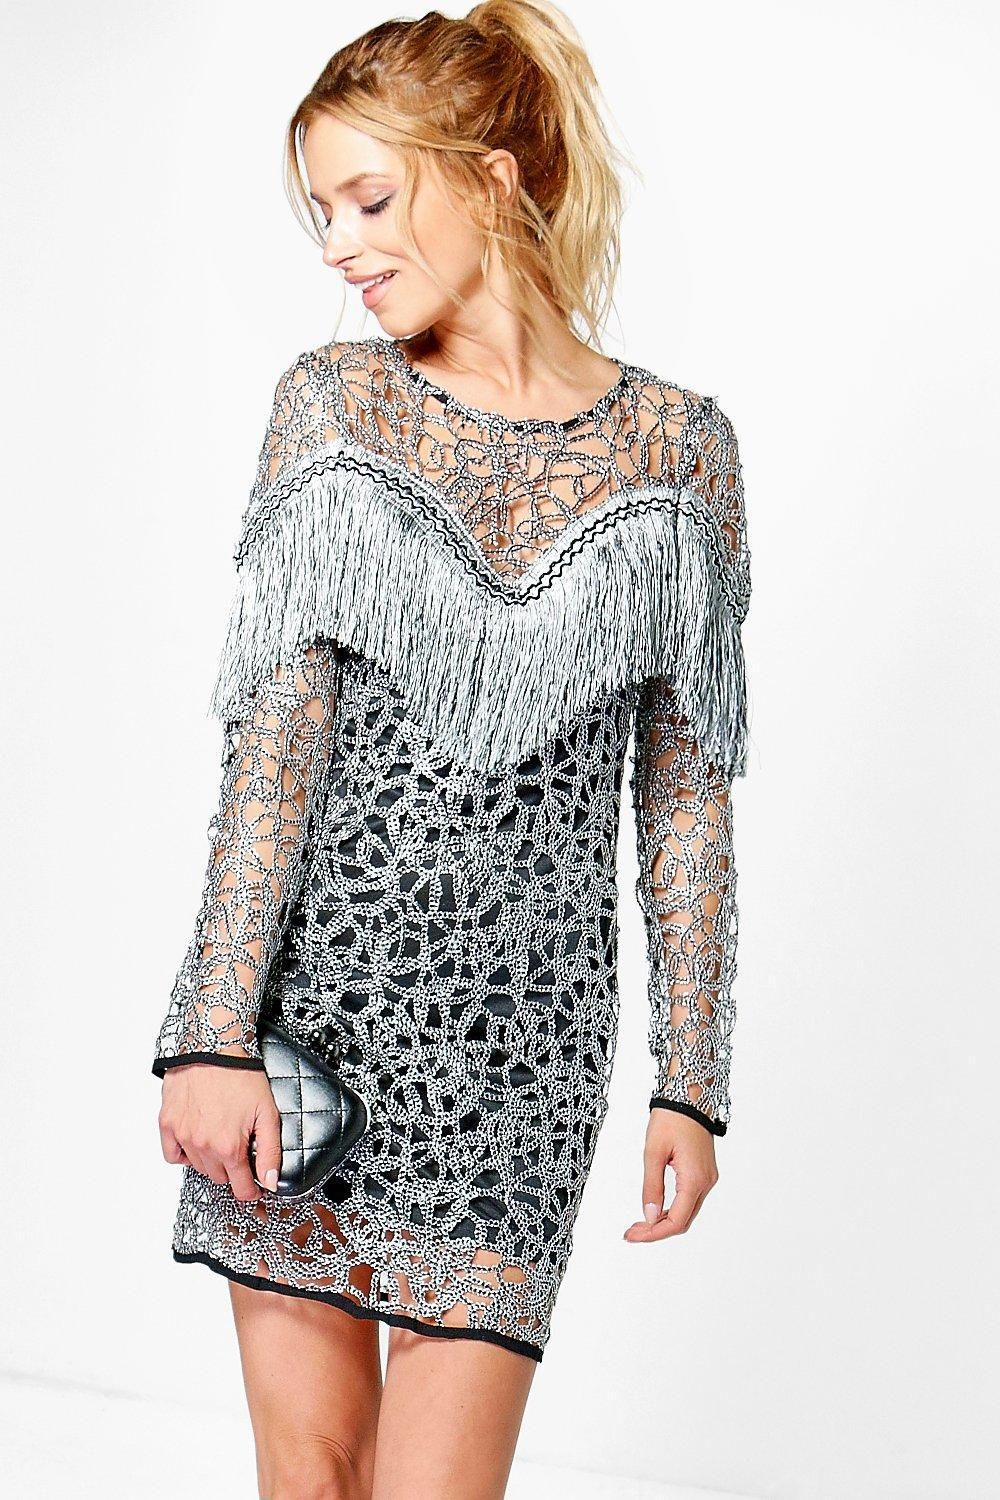 19a51ae724 Boutique Ava Tassel Long Sleeved Dress